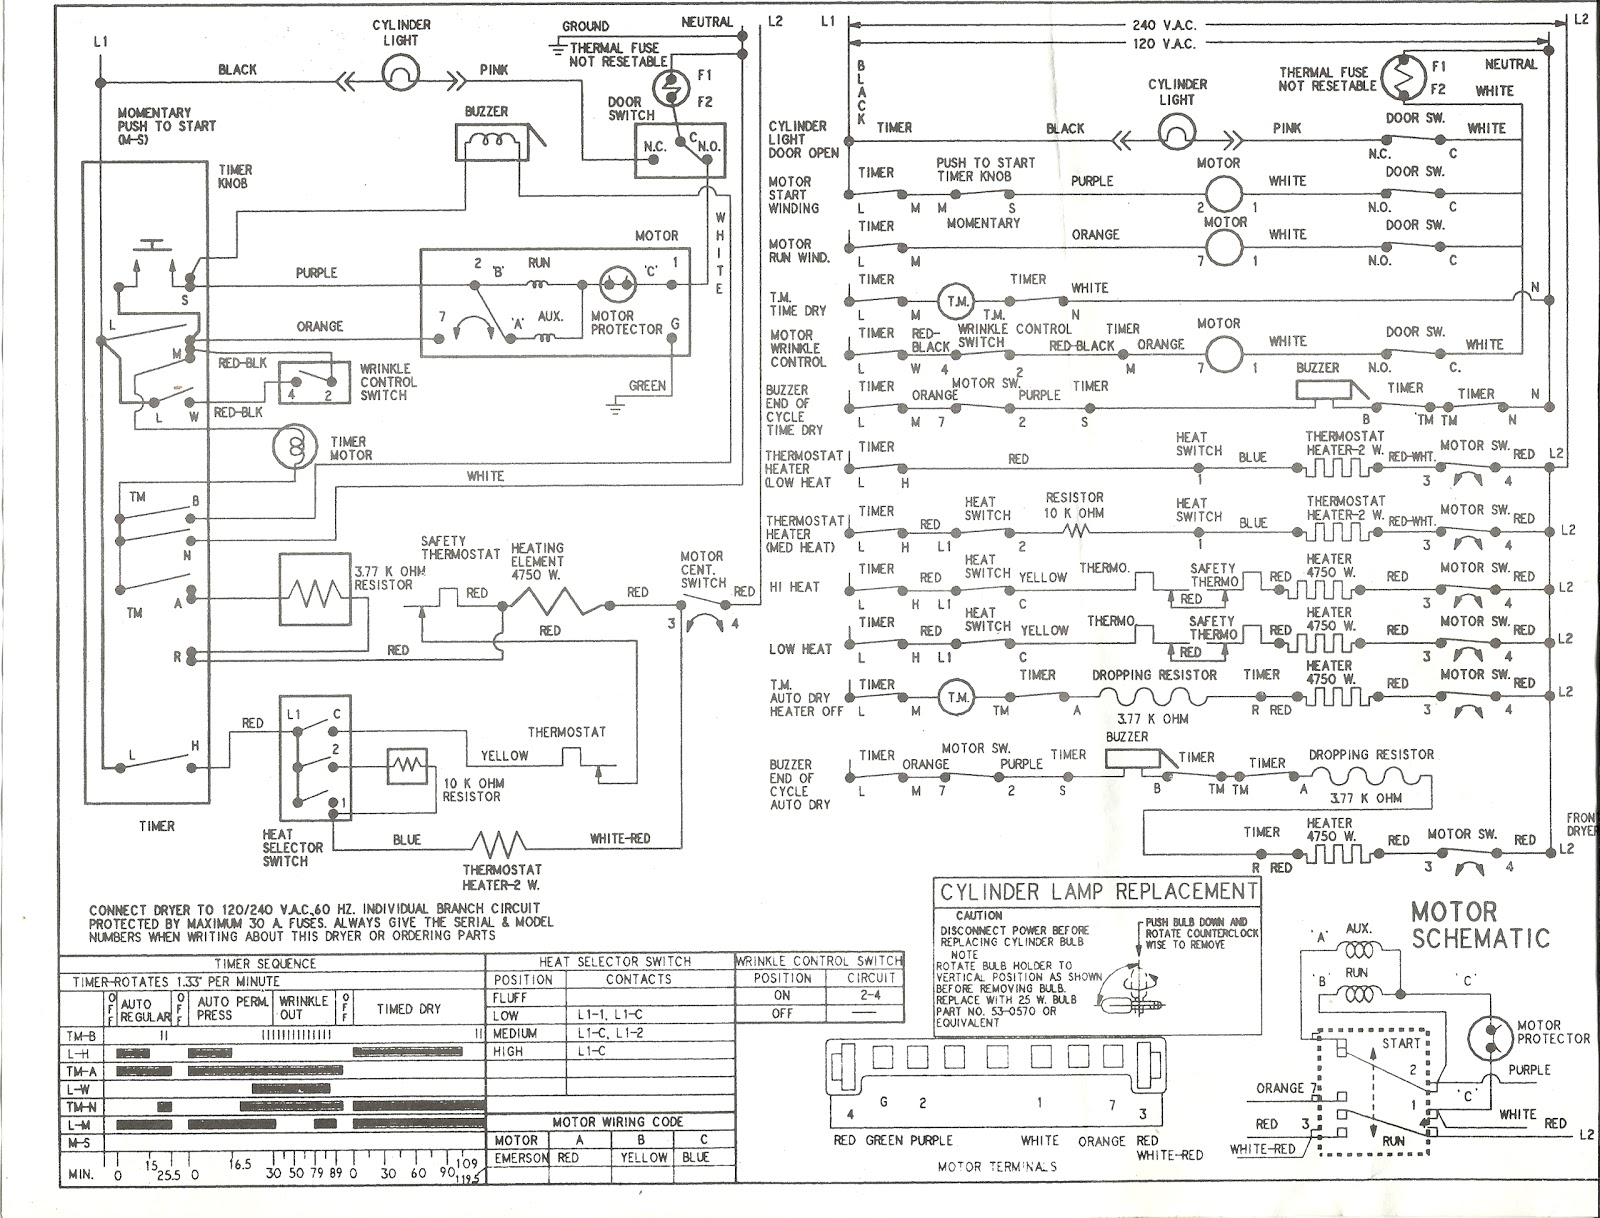 Wiring Diagram For: Appliance Talk: Kenmore Series Electric Dryer Wiring Diagram ,Design